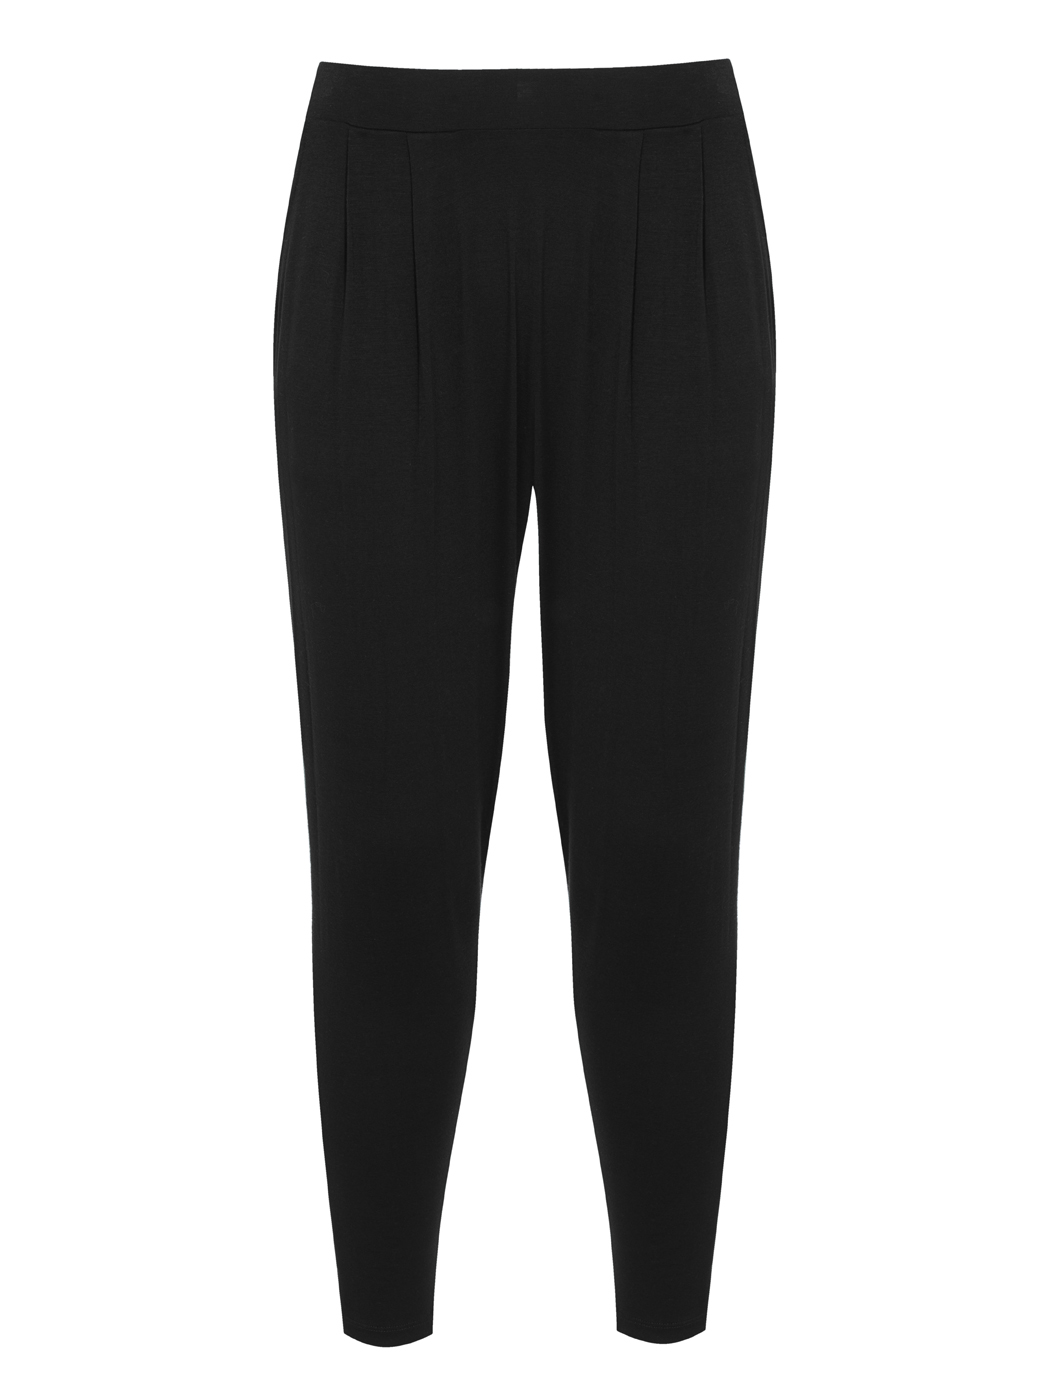 M Life Women's Hipster Yoga Pants | Trousers